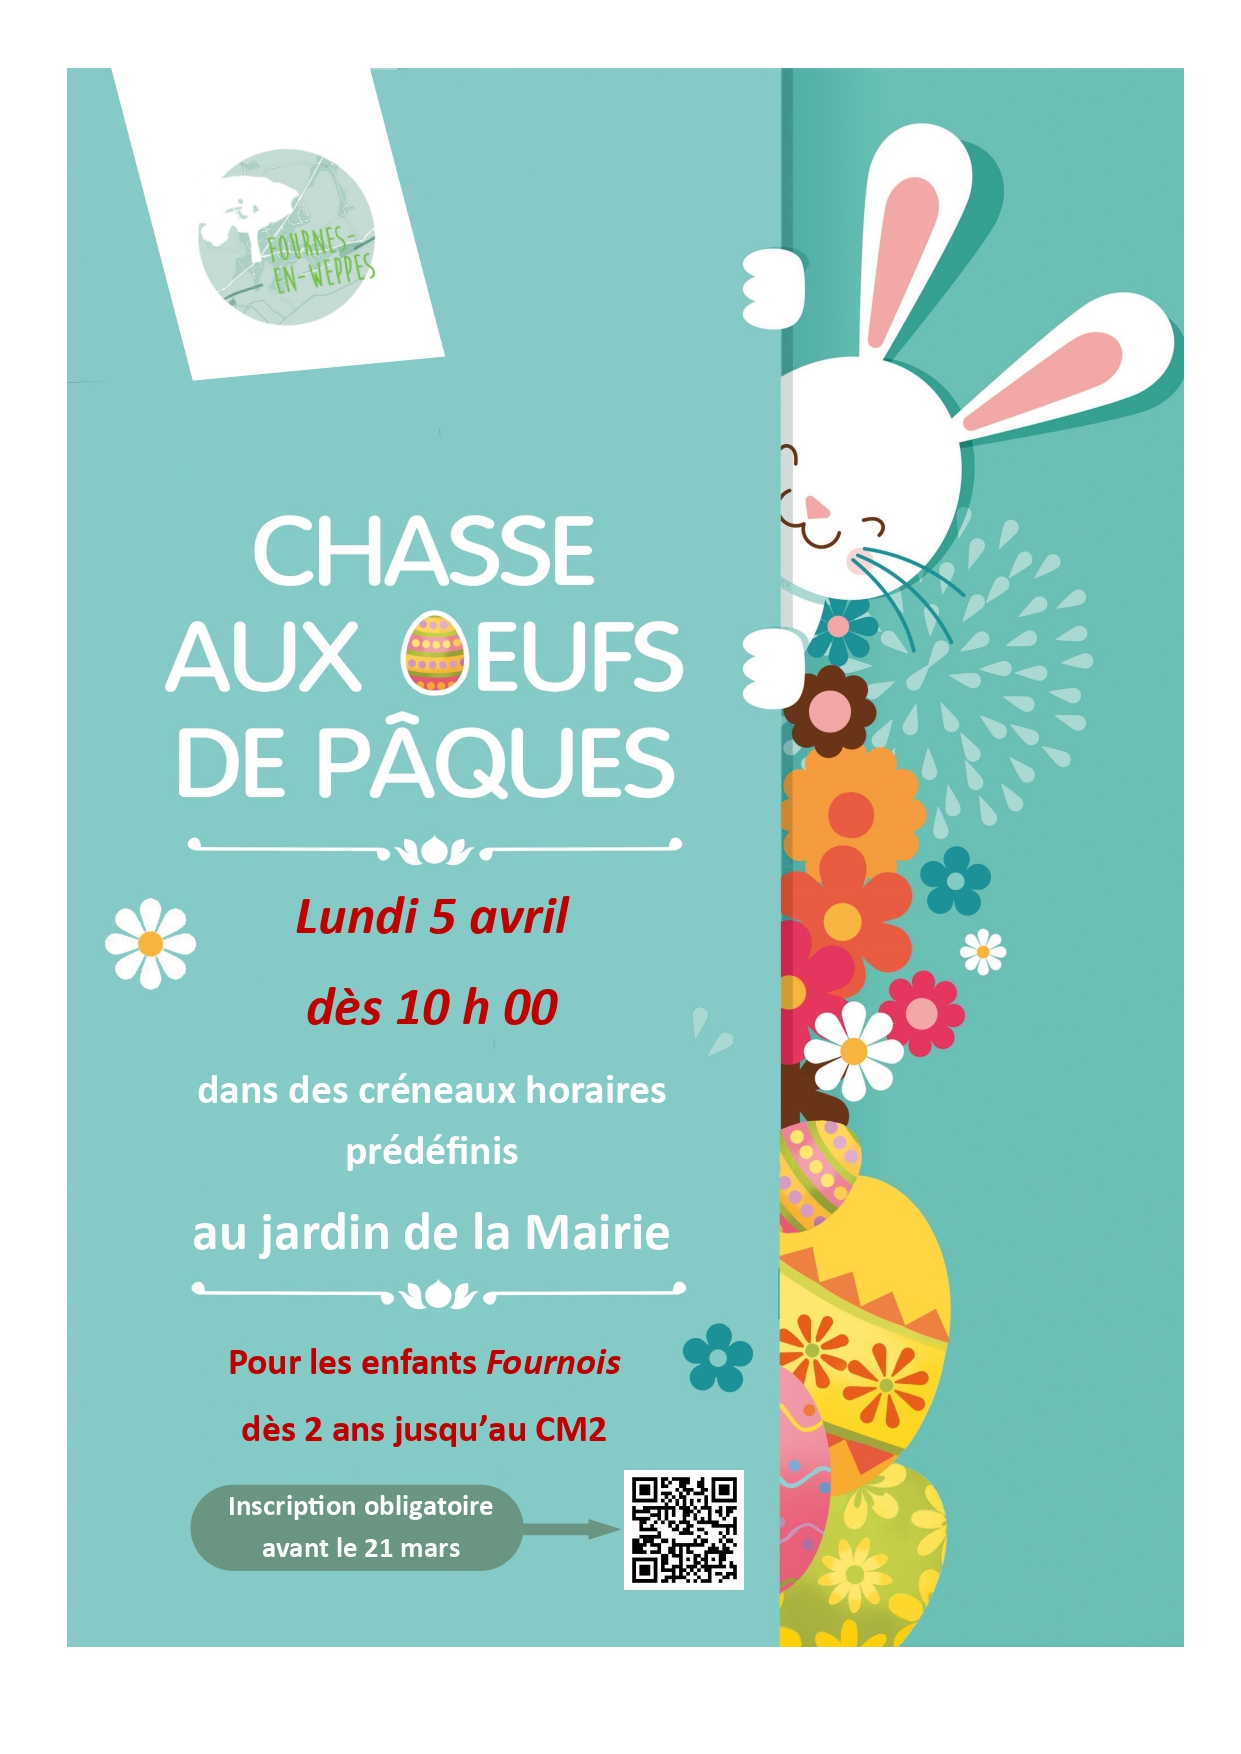 chasse aux oeufs FEW 5 avril 2021